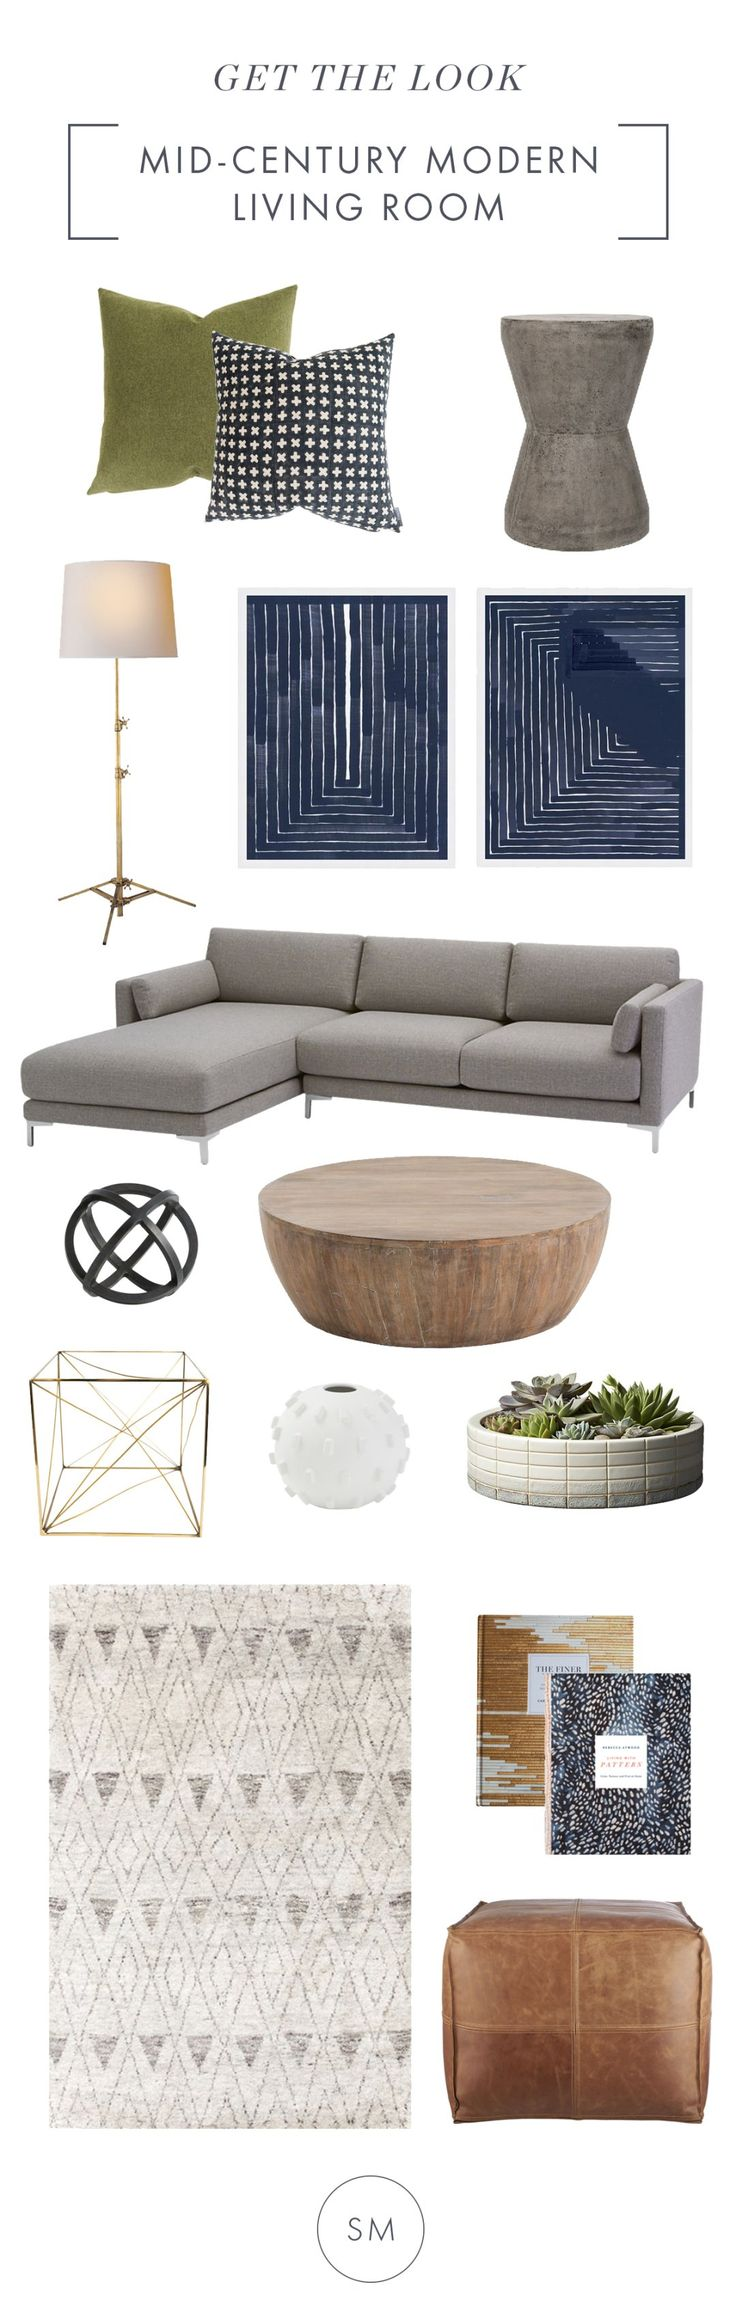 Get a Mid-Century Modern Living Room - STUDIO MCGEE